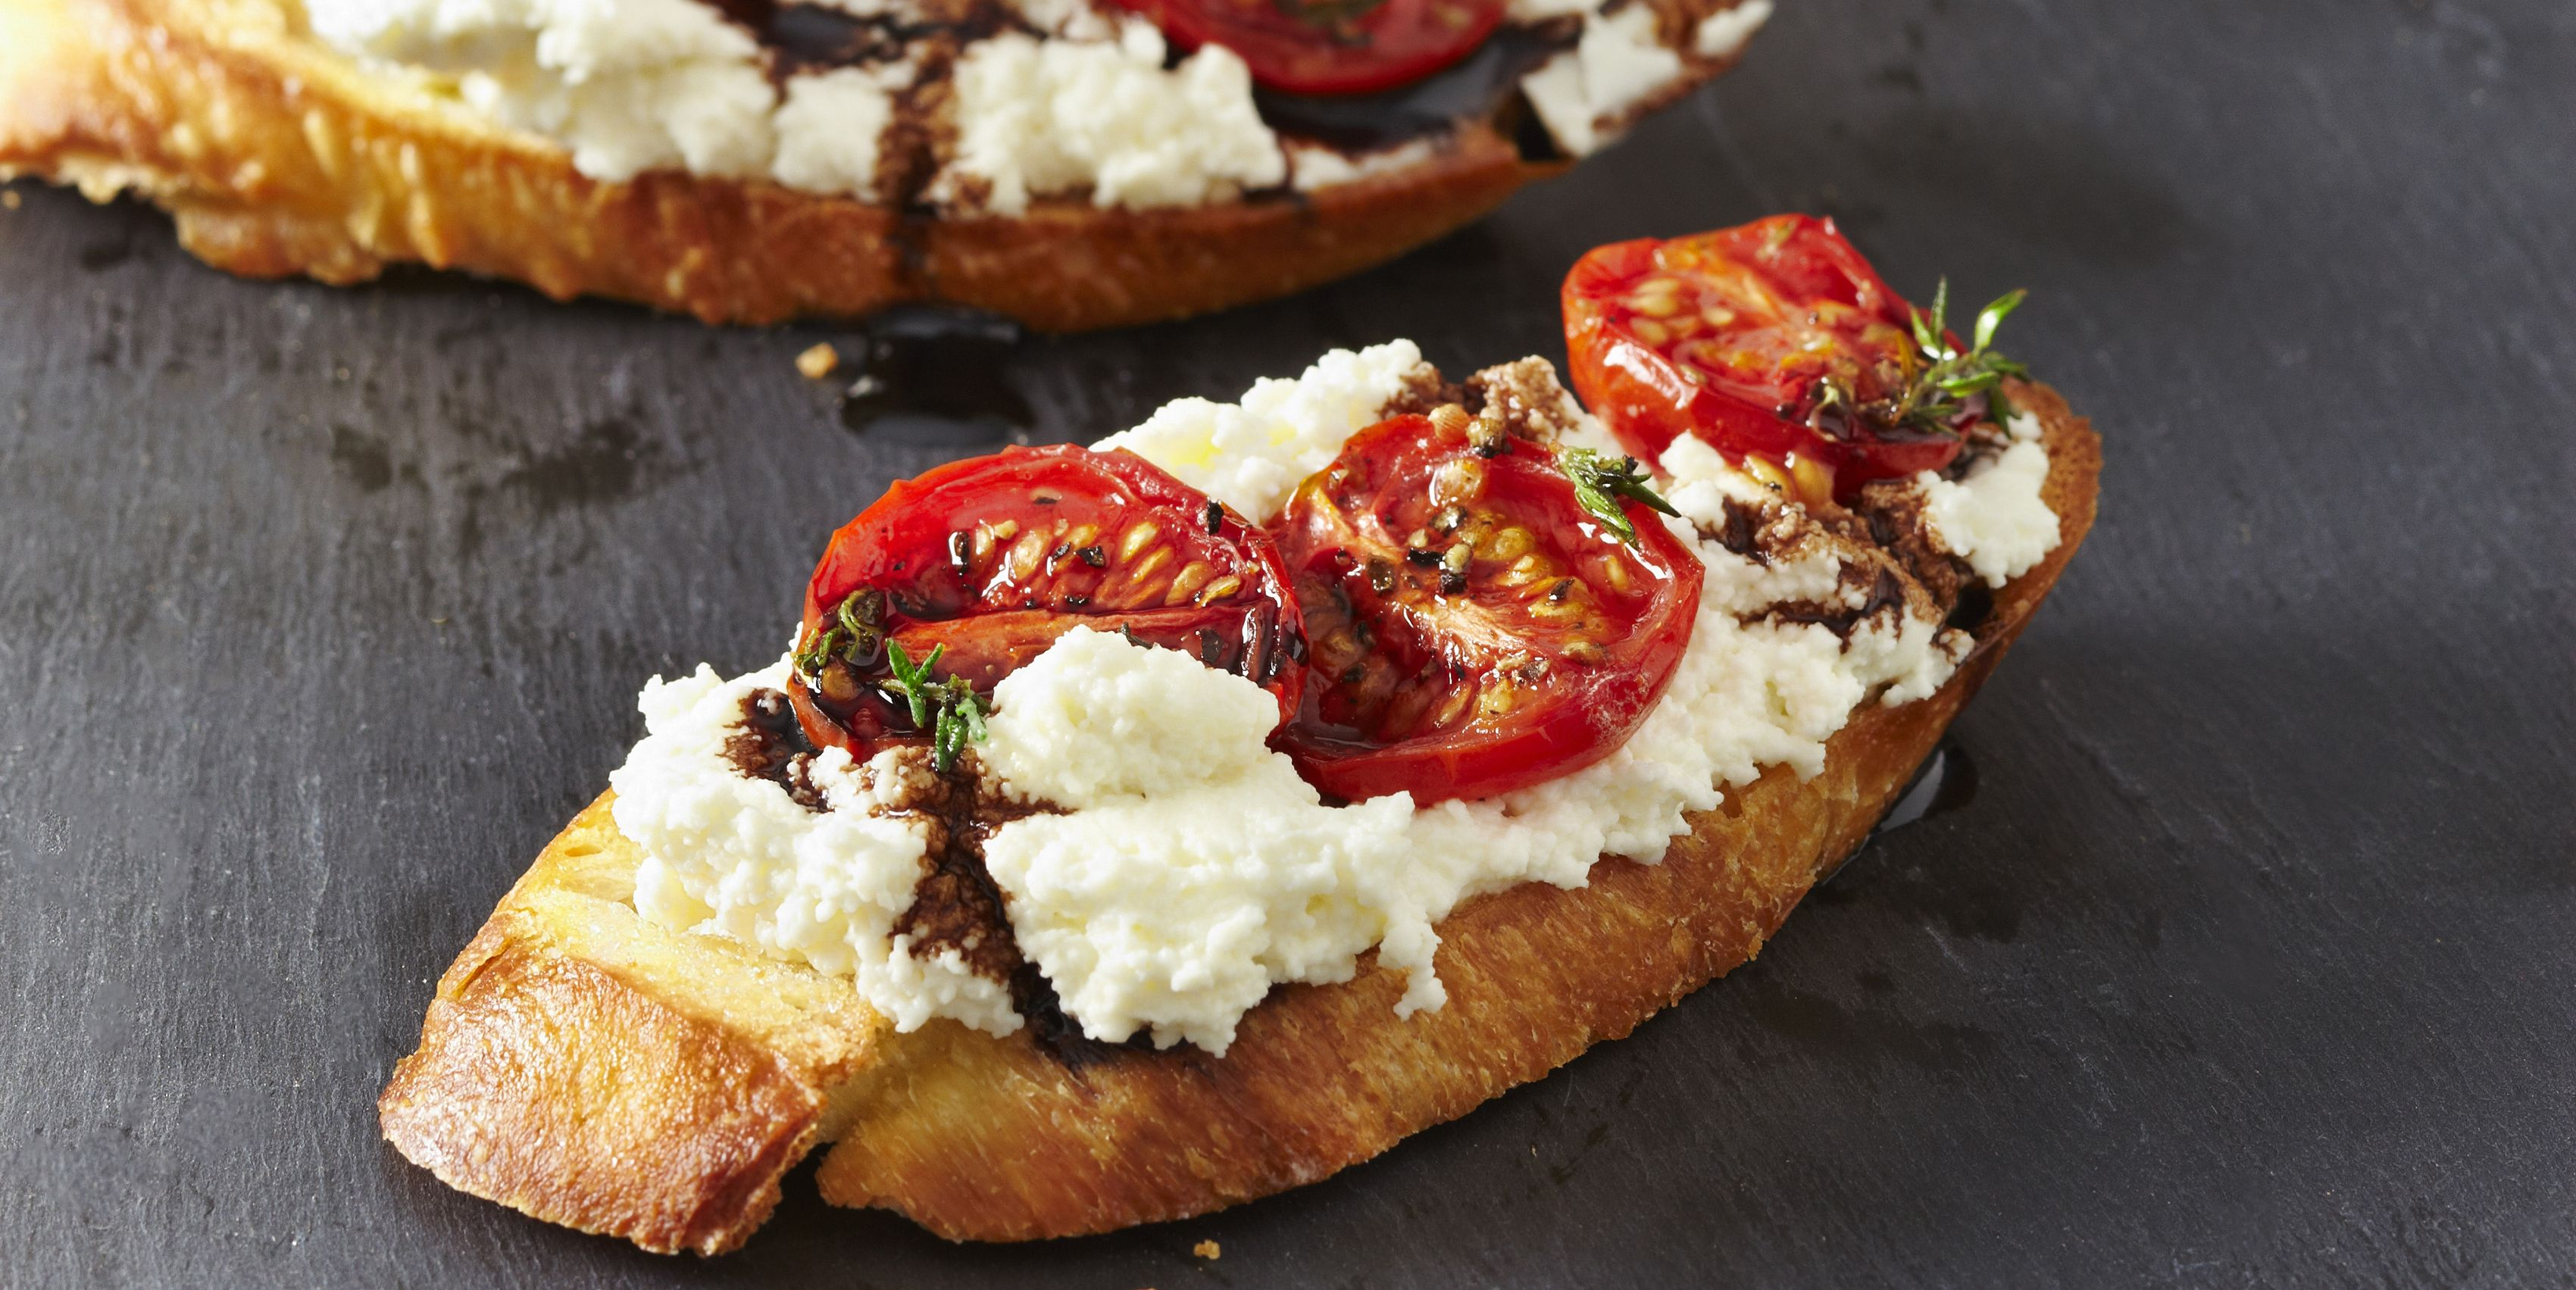 Appetizer of Ricotta and Tomatoes on Bread, Studio Shot